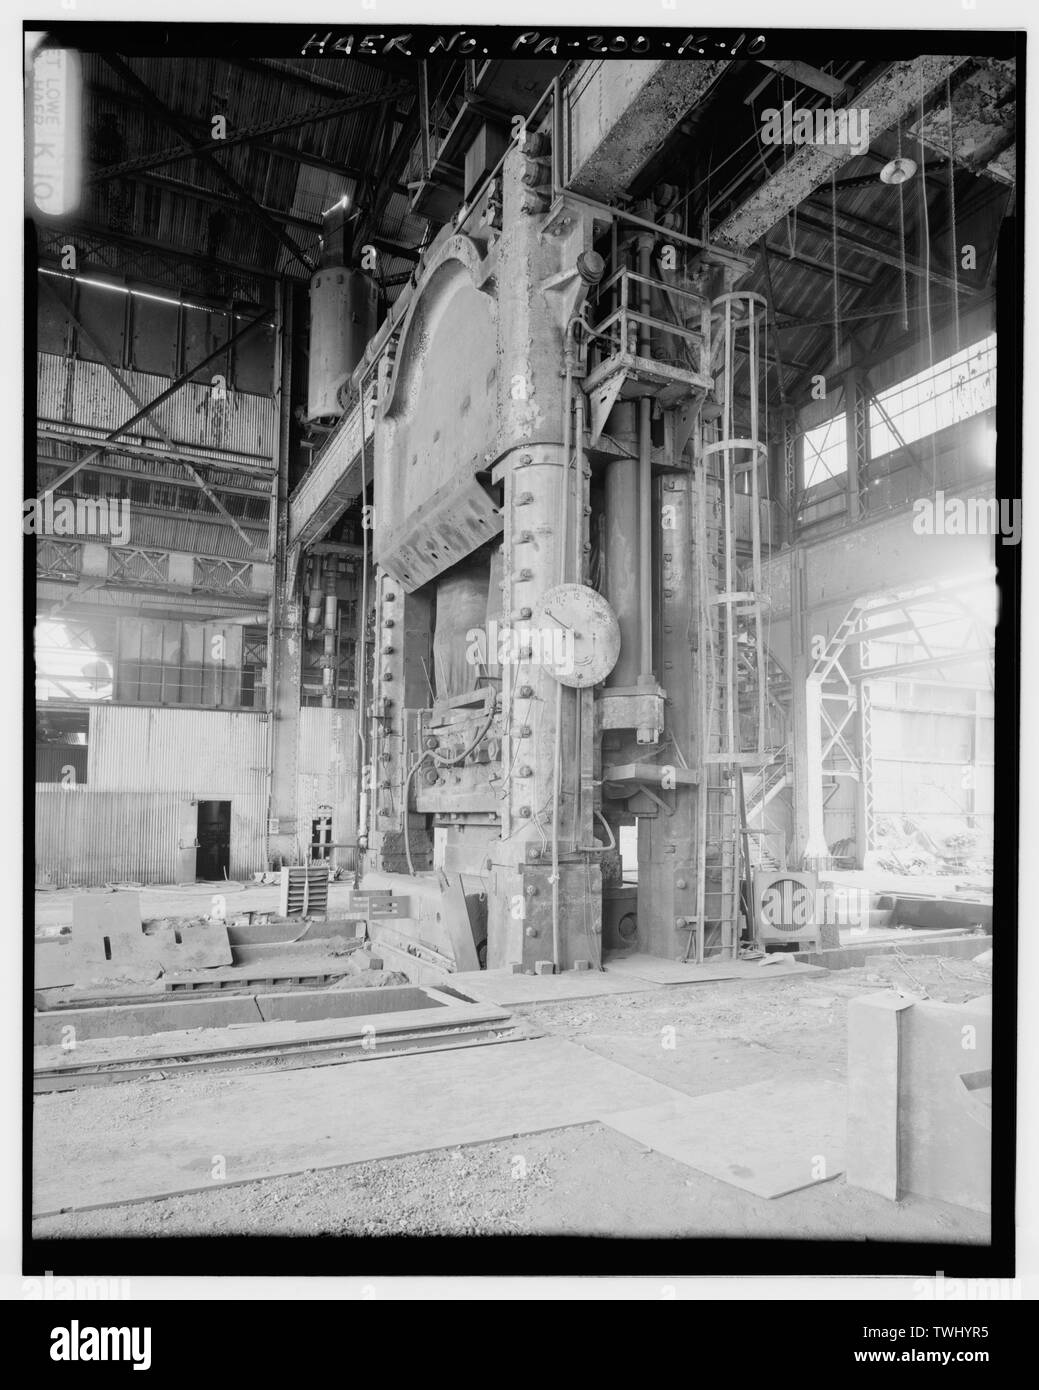 SIDE-VIEW OF No. 1 PRESS WITH DIAL IN CENTER OF IMAGE. - U.S. Steel Homestead Works, Press Shop No. 1, Along Monongahela River, Homestead, Allegheny County, PA; U.S. Steel Corporation; Bethlehem Steel Company; United Engineering; Carnegie, Phipps and Company; Davy Brothers; Joseph Whitworth and Company; Fritz, John; Davenport, Russell; Mesta Machine Company; Stupich, Martin, photographer - Stock Image